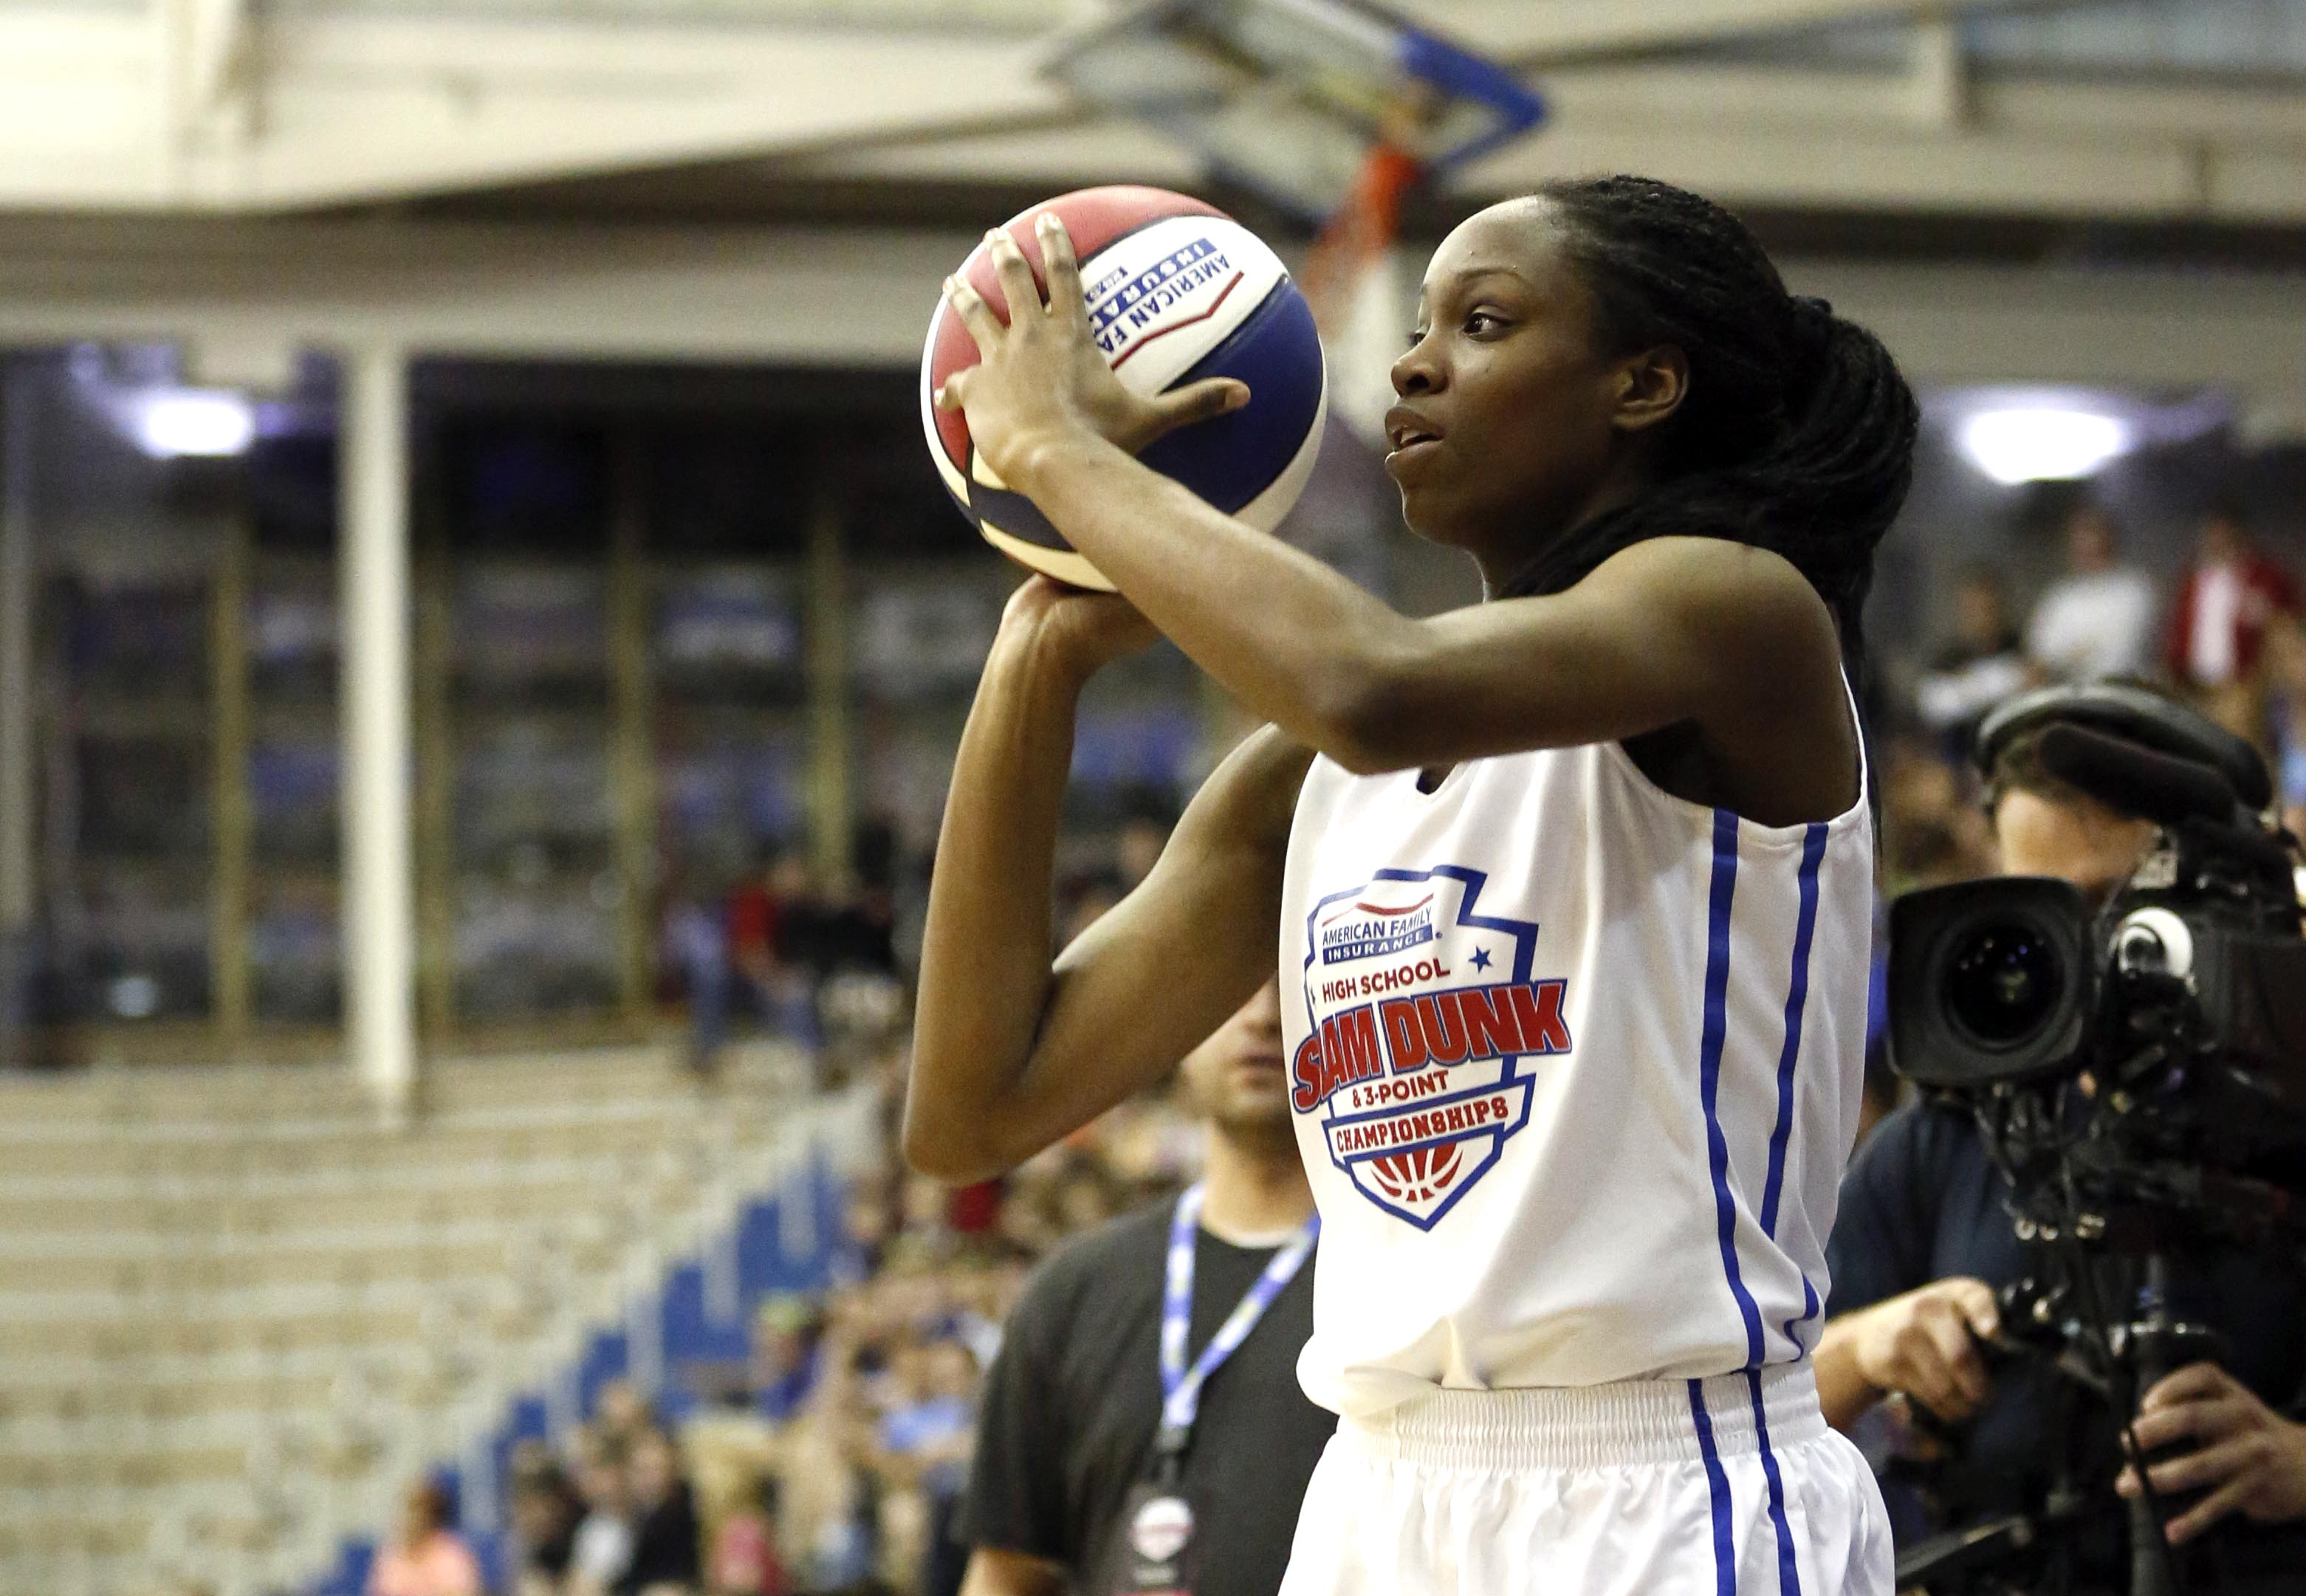 Kennedy Burke took home the girls three-point contest at the  American Family Insurance High School Slam Dunk and Three-Point Championship. (Photo: Aaron Doster, USA TODAY Sports)